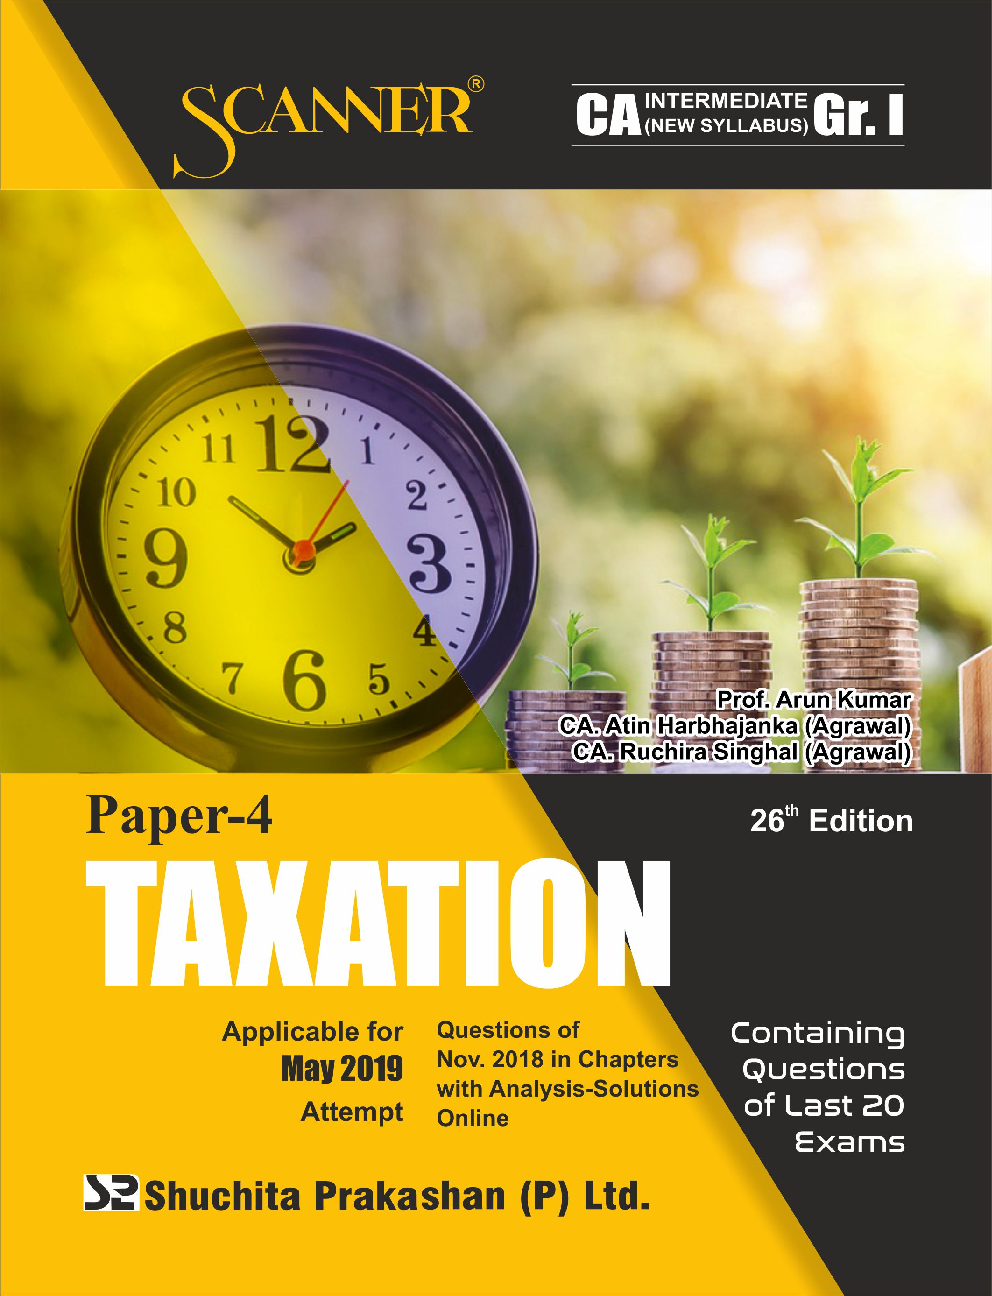 Shuchita Prakashan Solved Scanner CA Intermediate (New Syllabus) Group-I Paper-4 Taxation For May 2019 Exam - Page 1